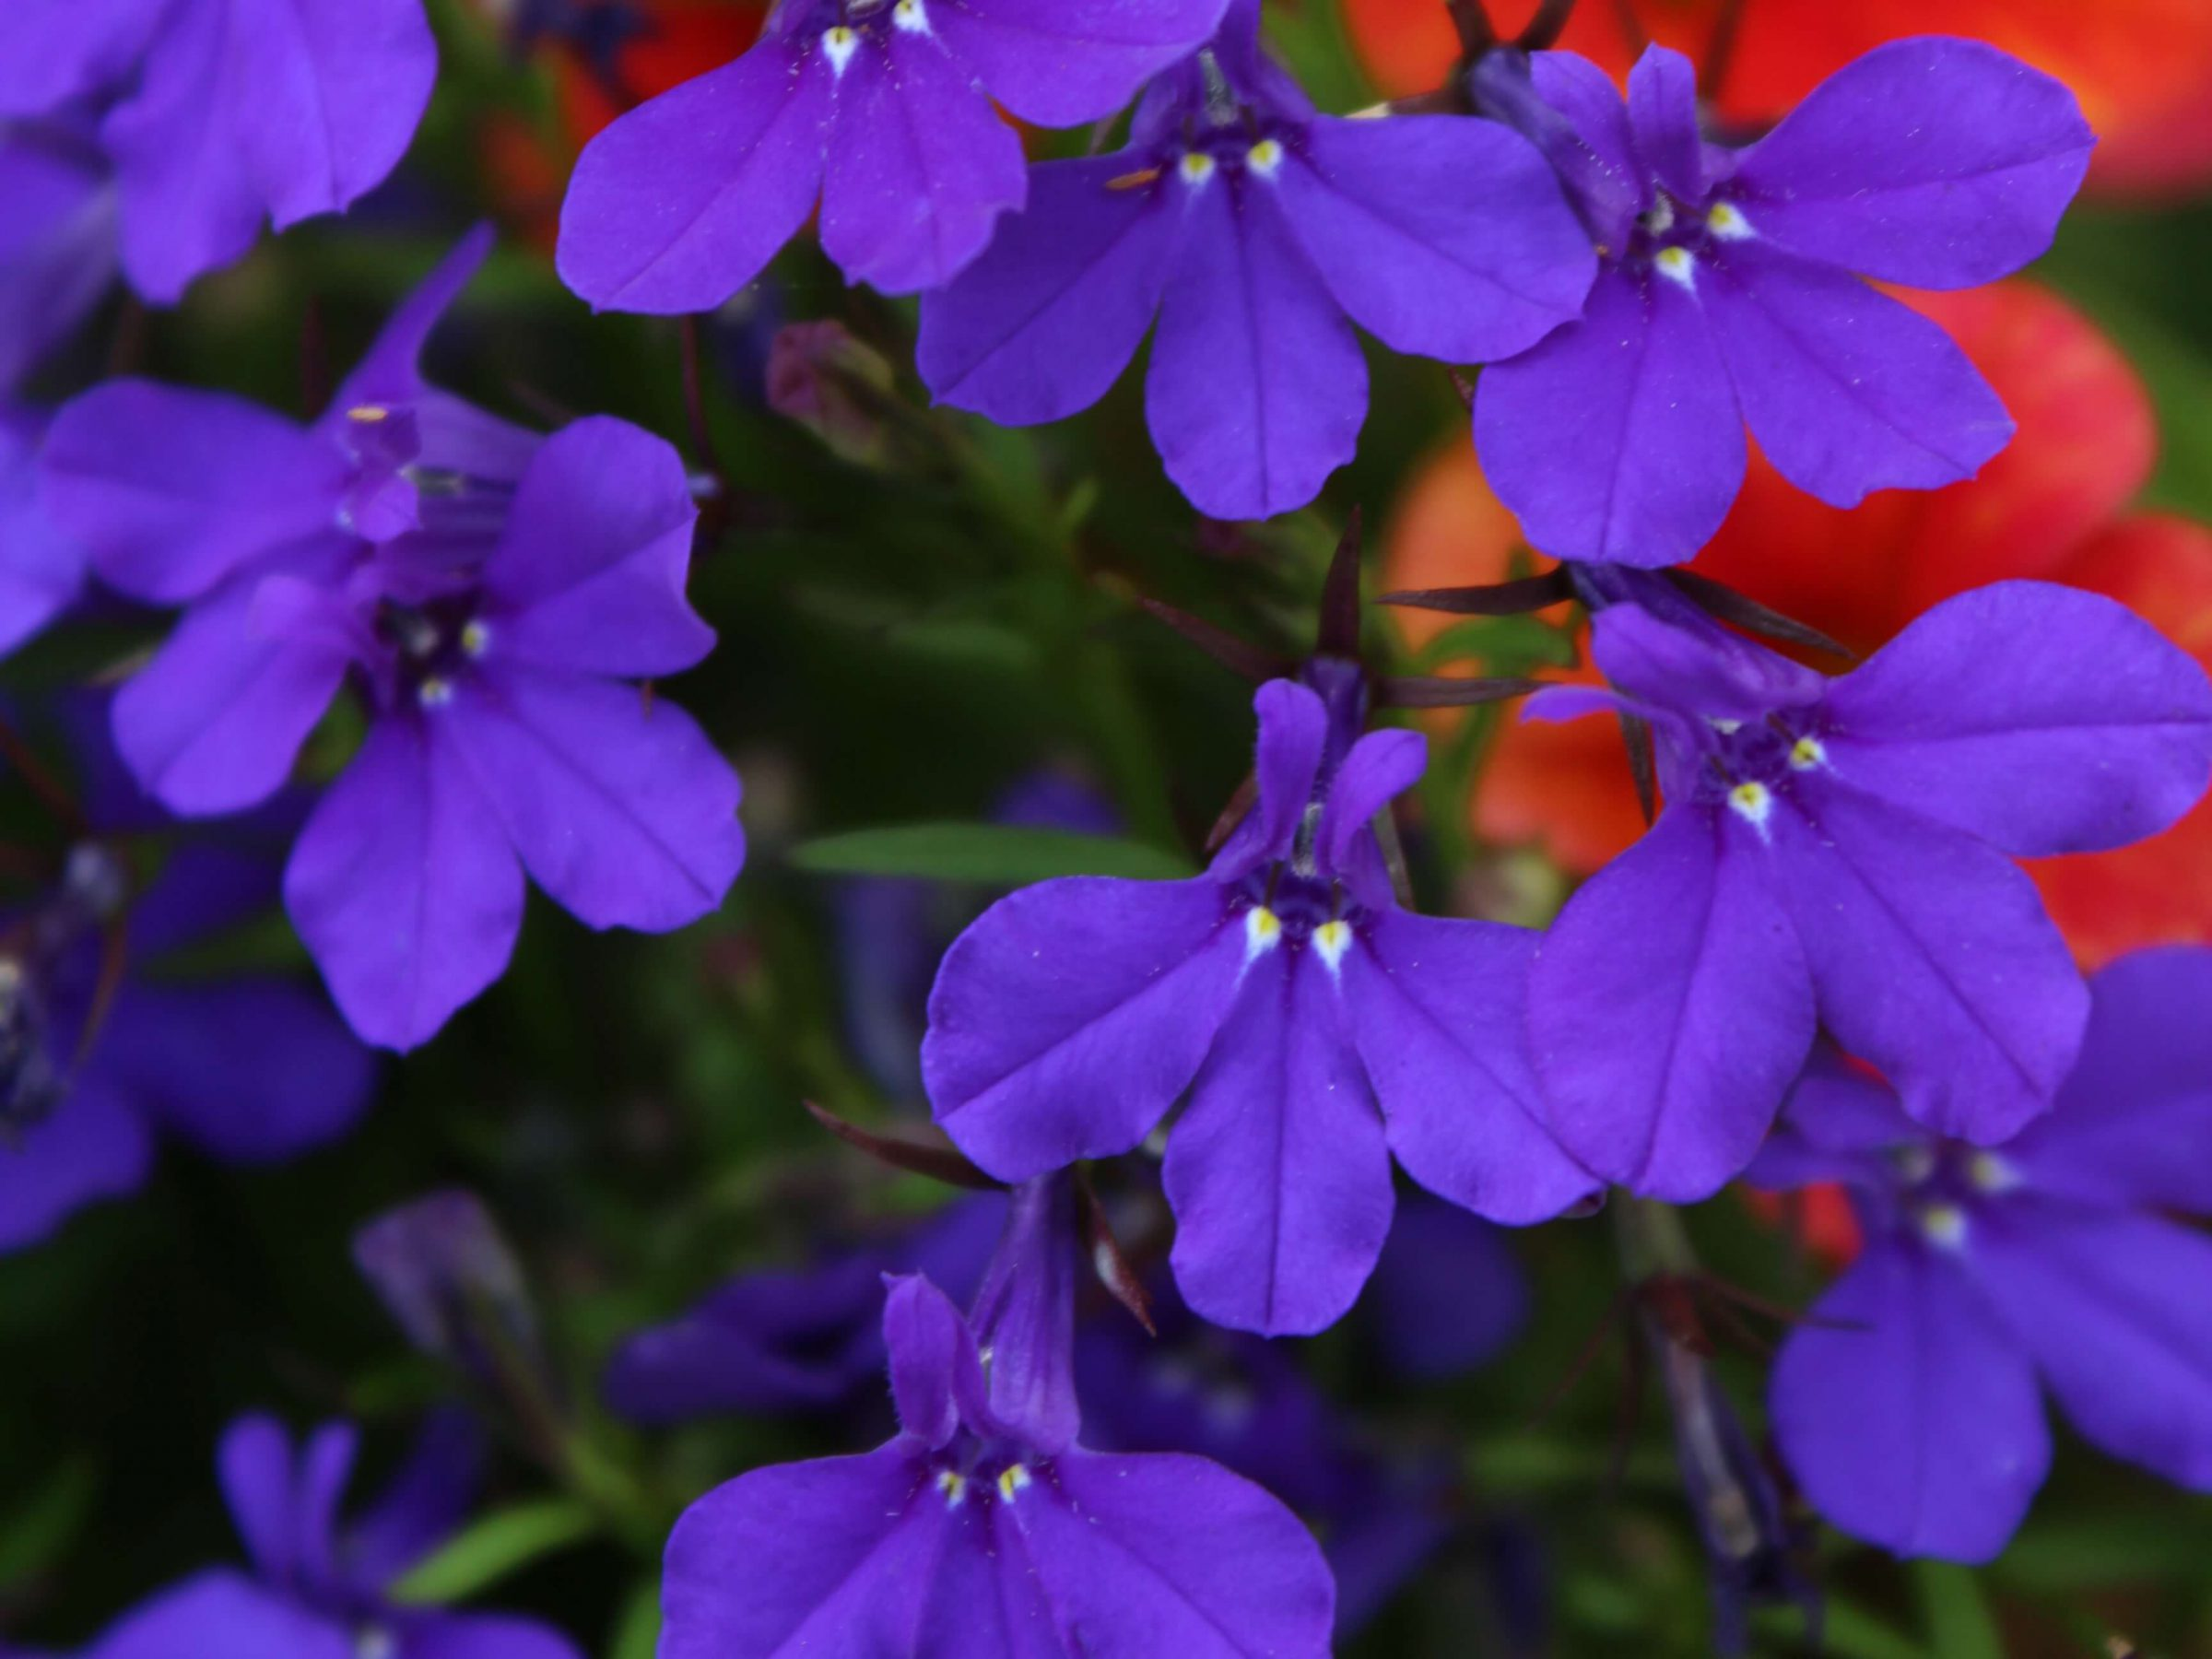 Lobelia is an underutilized annual found in snowy white or an electric blue.